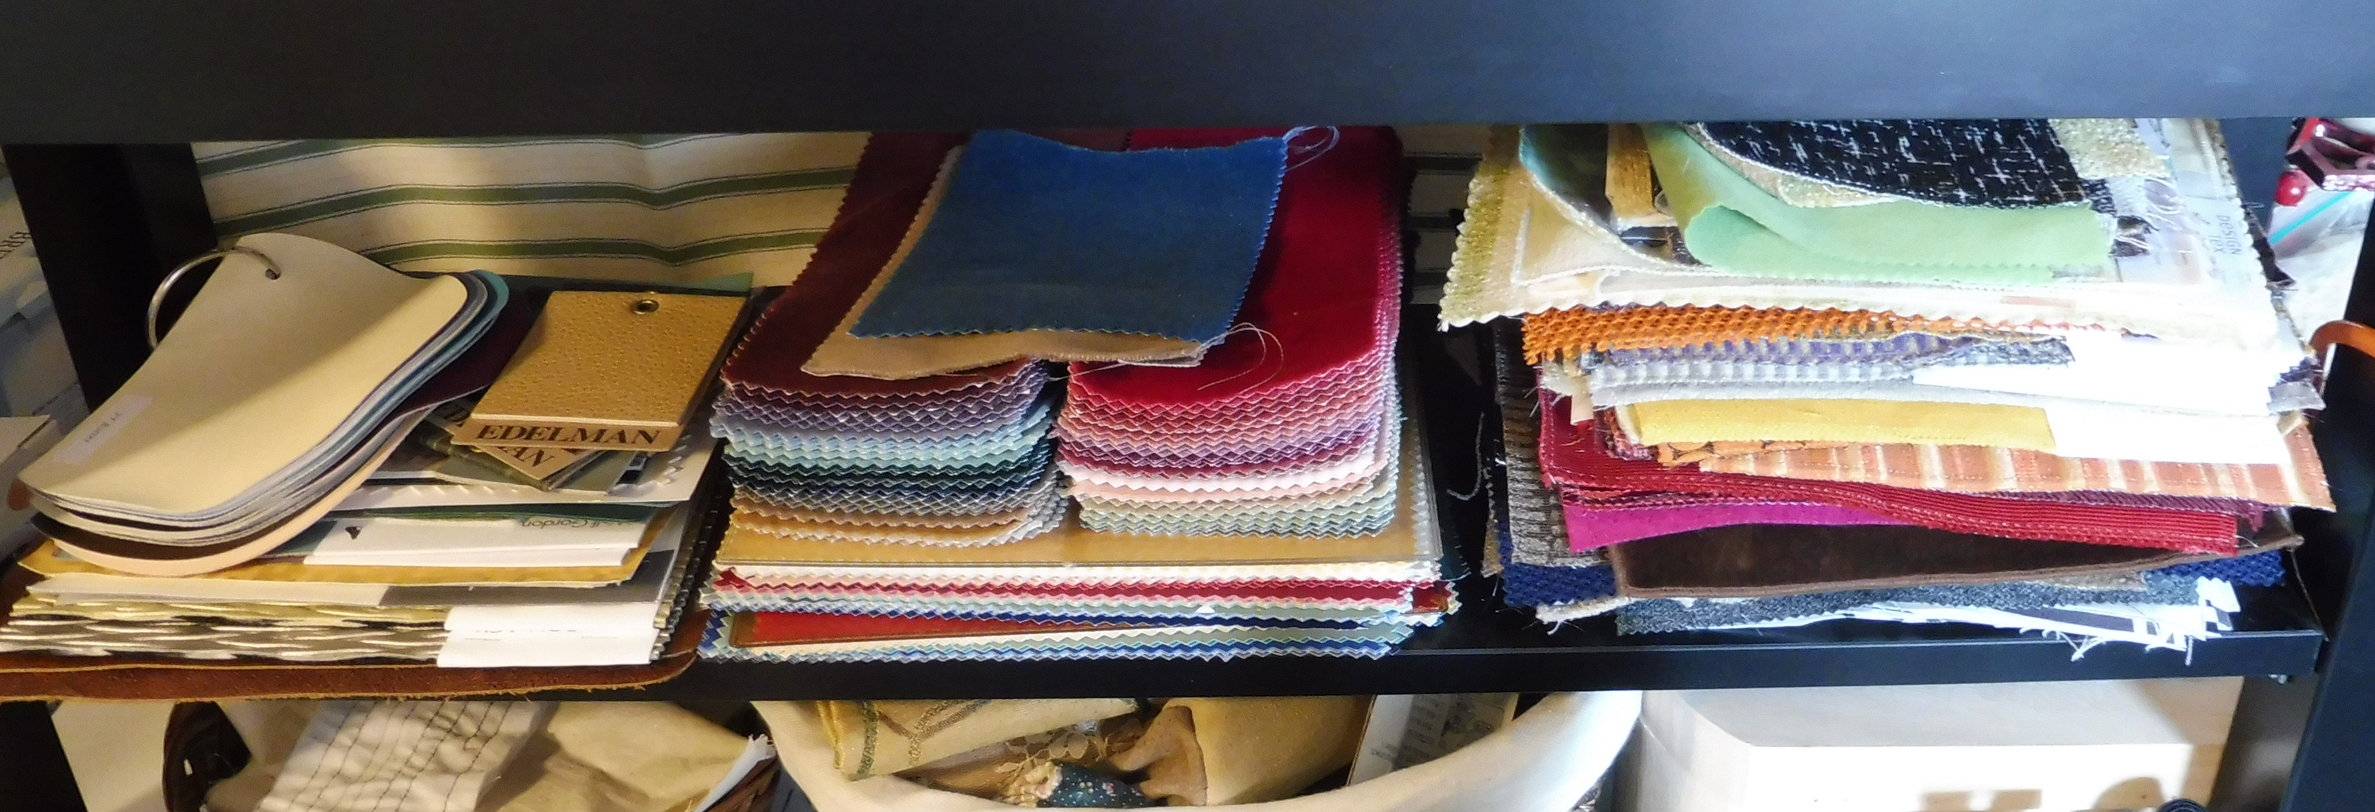 Stacked Fabrics (mostly sourced from Estate Sales)